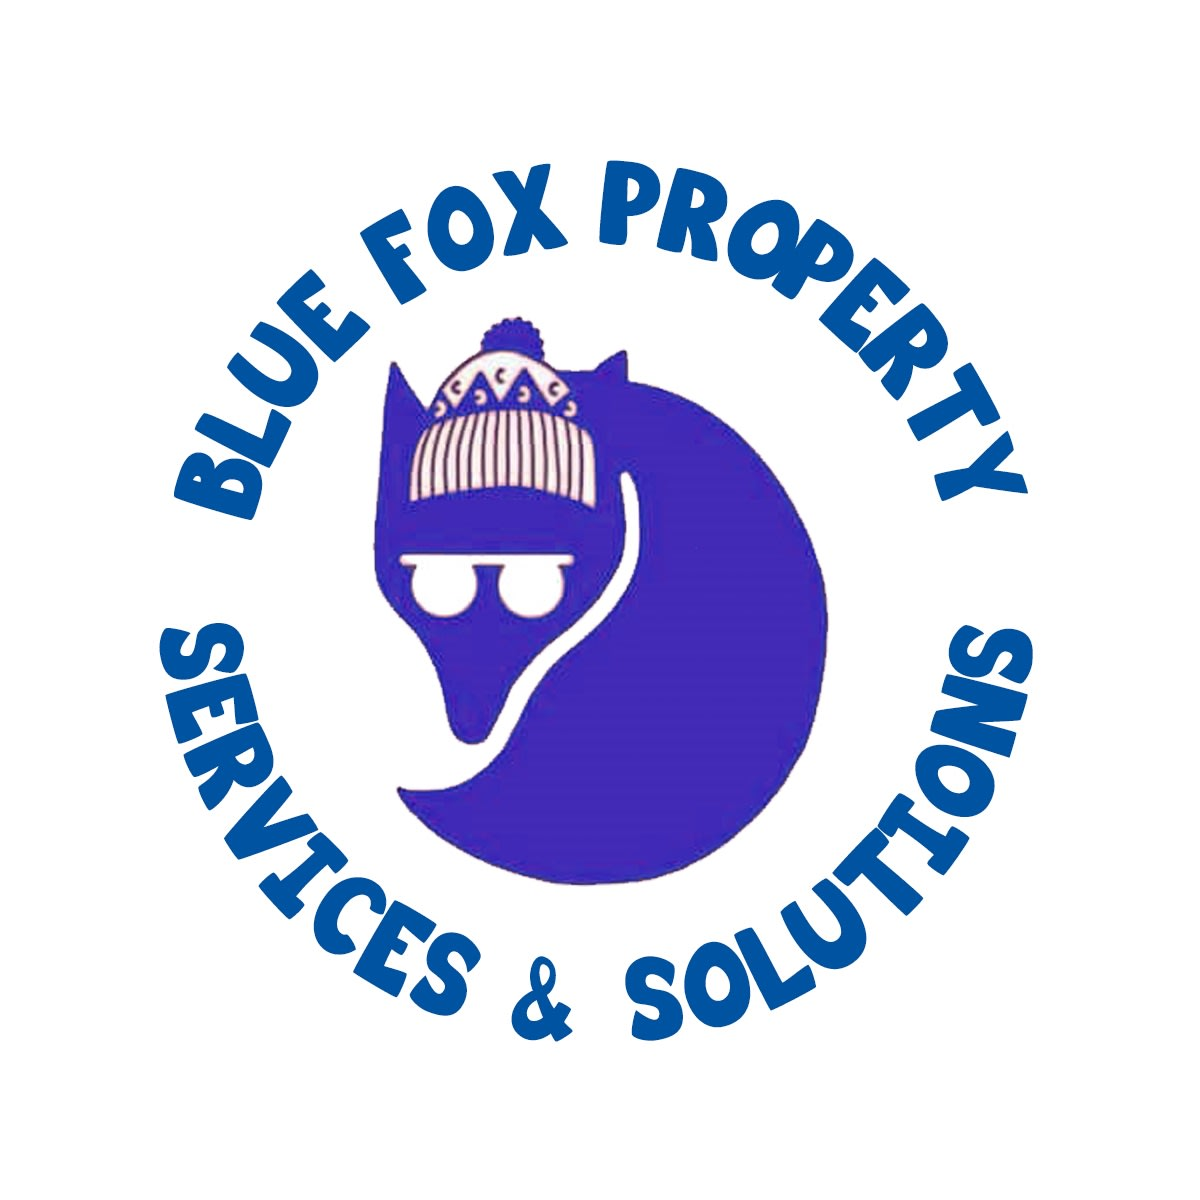 Blue Fox Property Services & Solutions